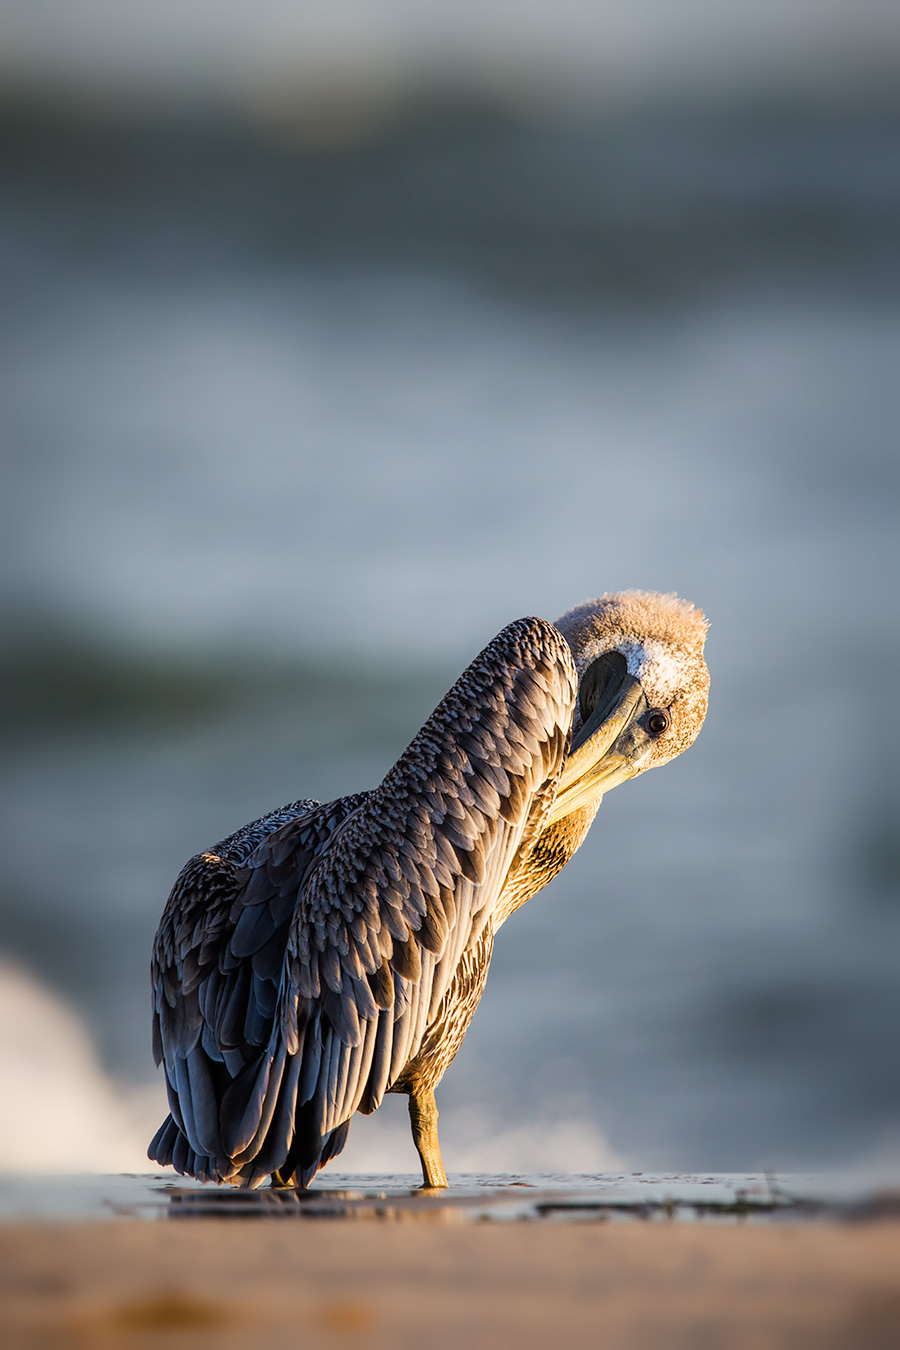 In Florida, this shot would get boring. But on LBI, catching a Pelican on the beach at close range is a doozy.